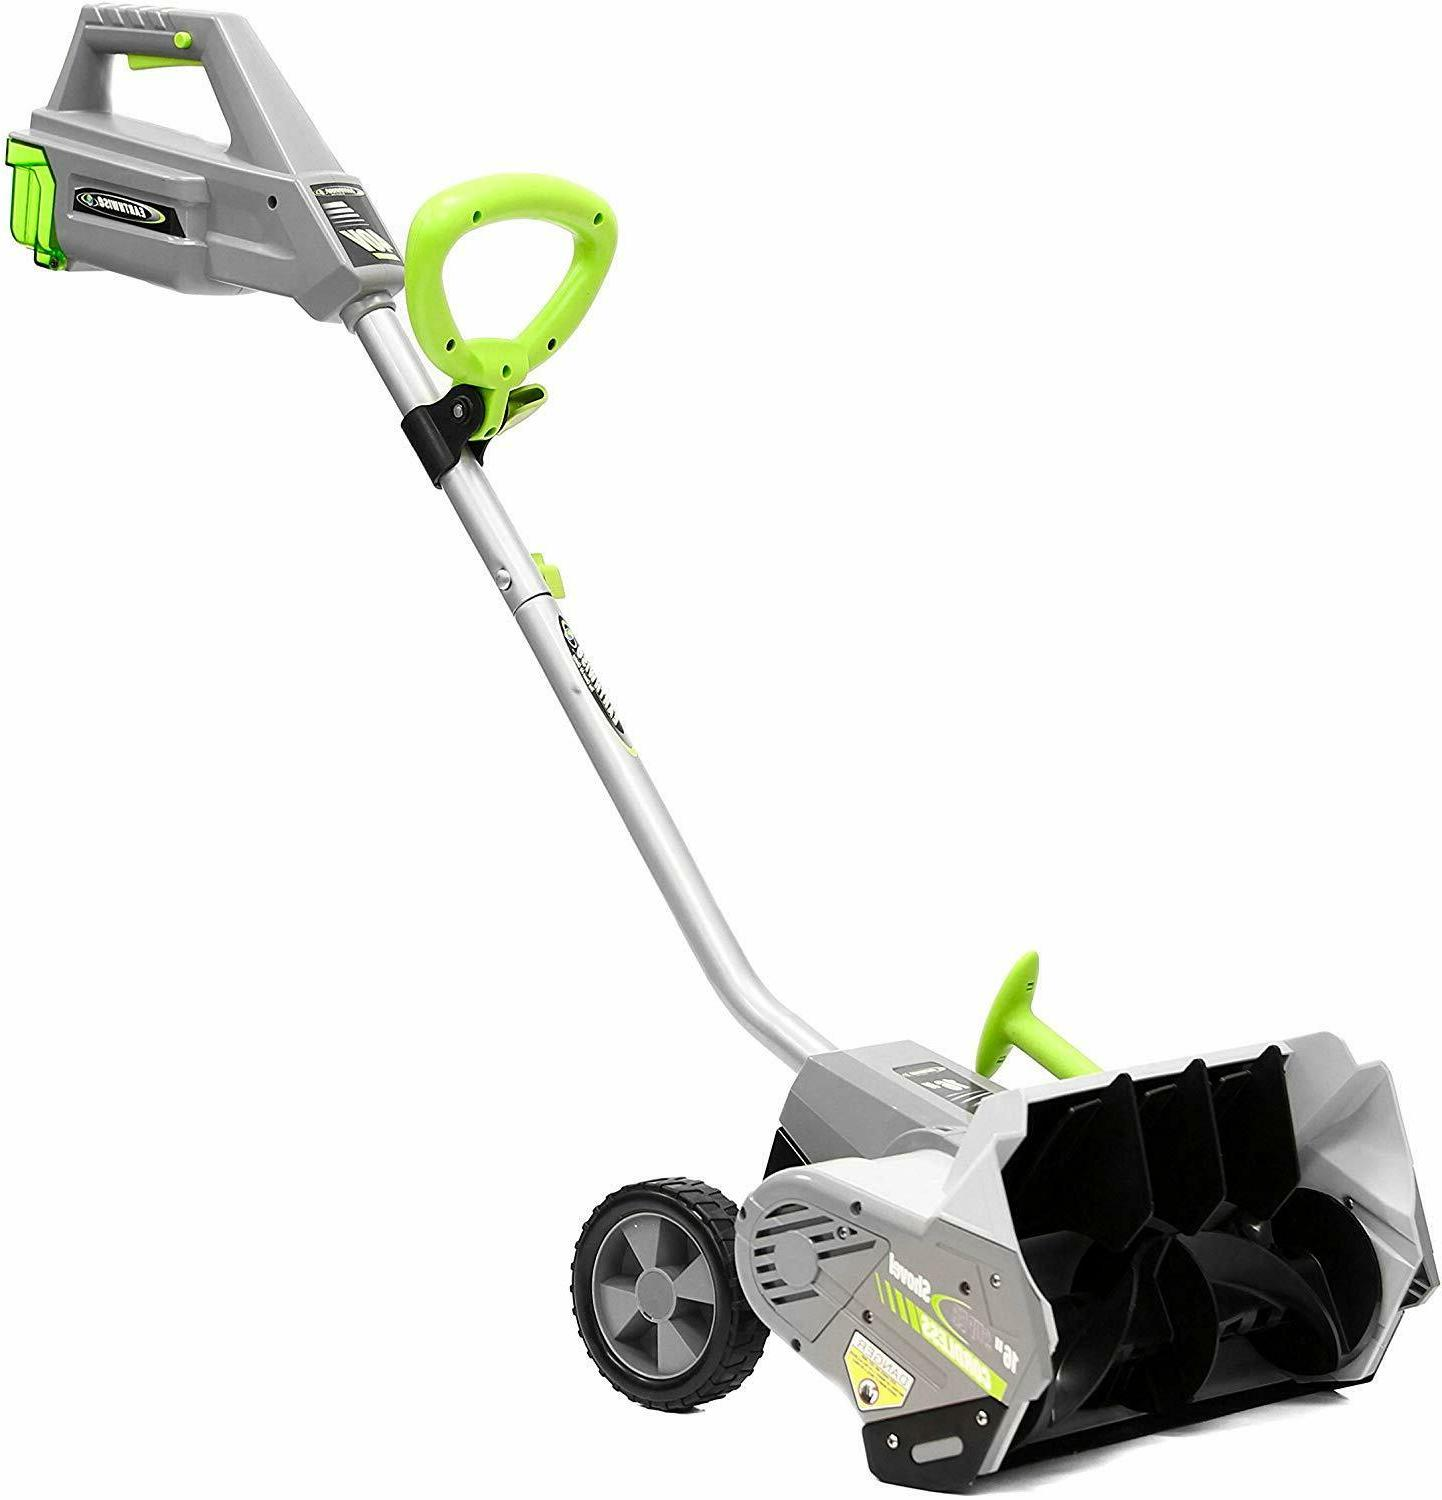 Earthwise Cordless Electric Snow Shovel 16 In. 300lbs/min